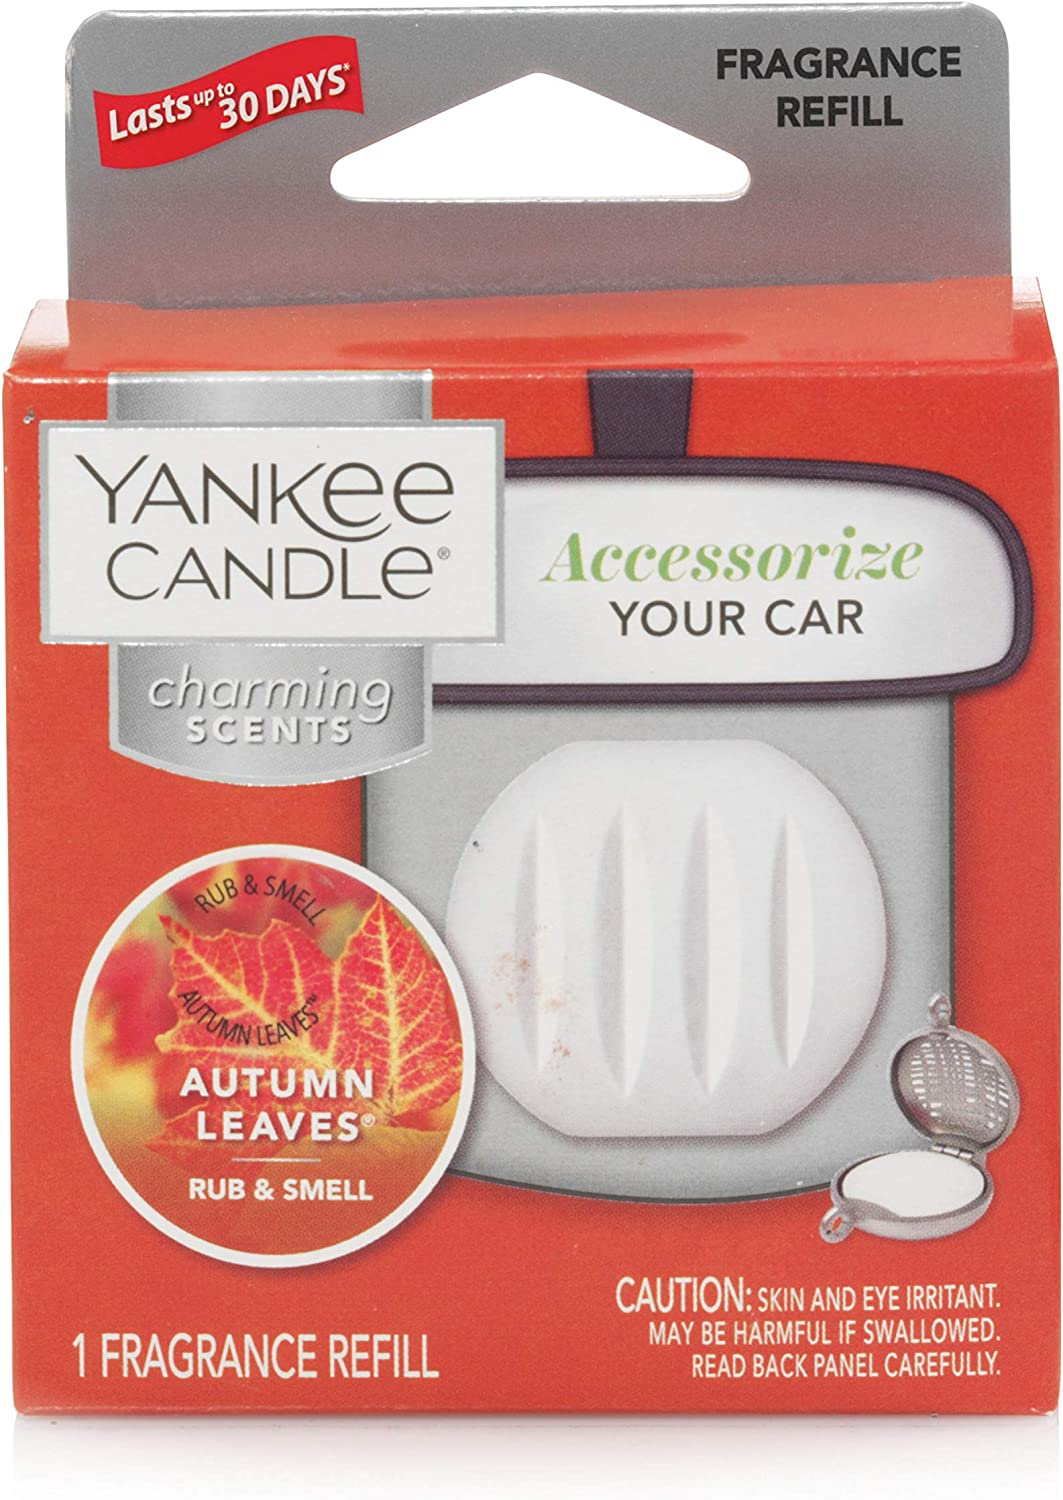 Yankee Candle Charming Scents Car Air Freshener Refill, Autumn Leaves